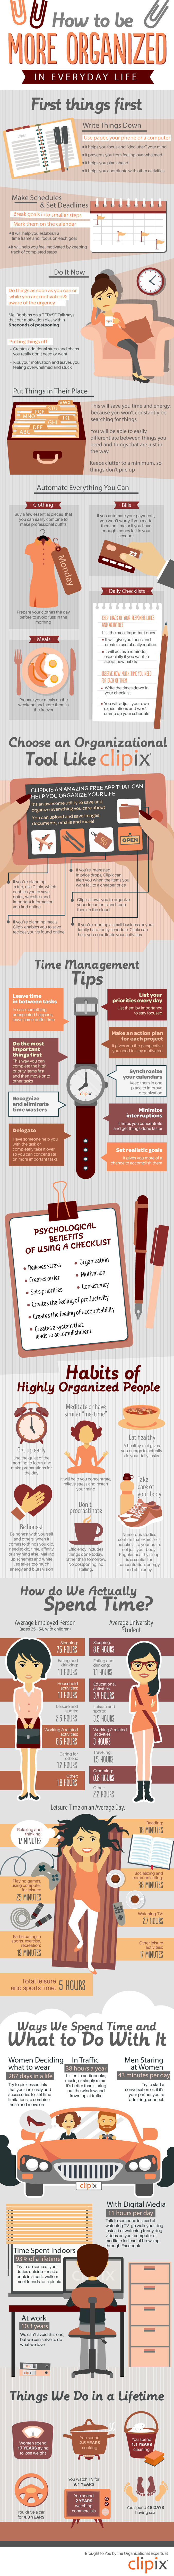 Are You Struggling To Organize Your Days? - Infographic